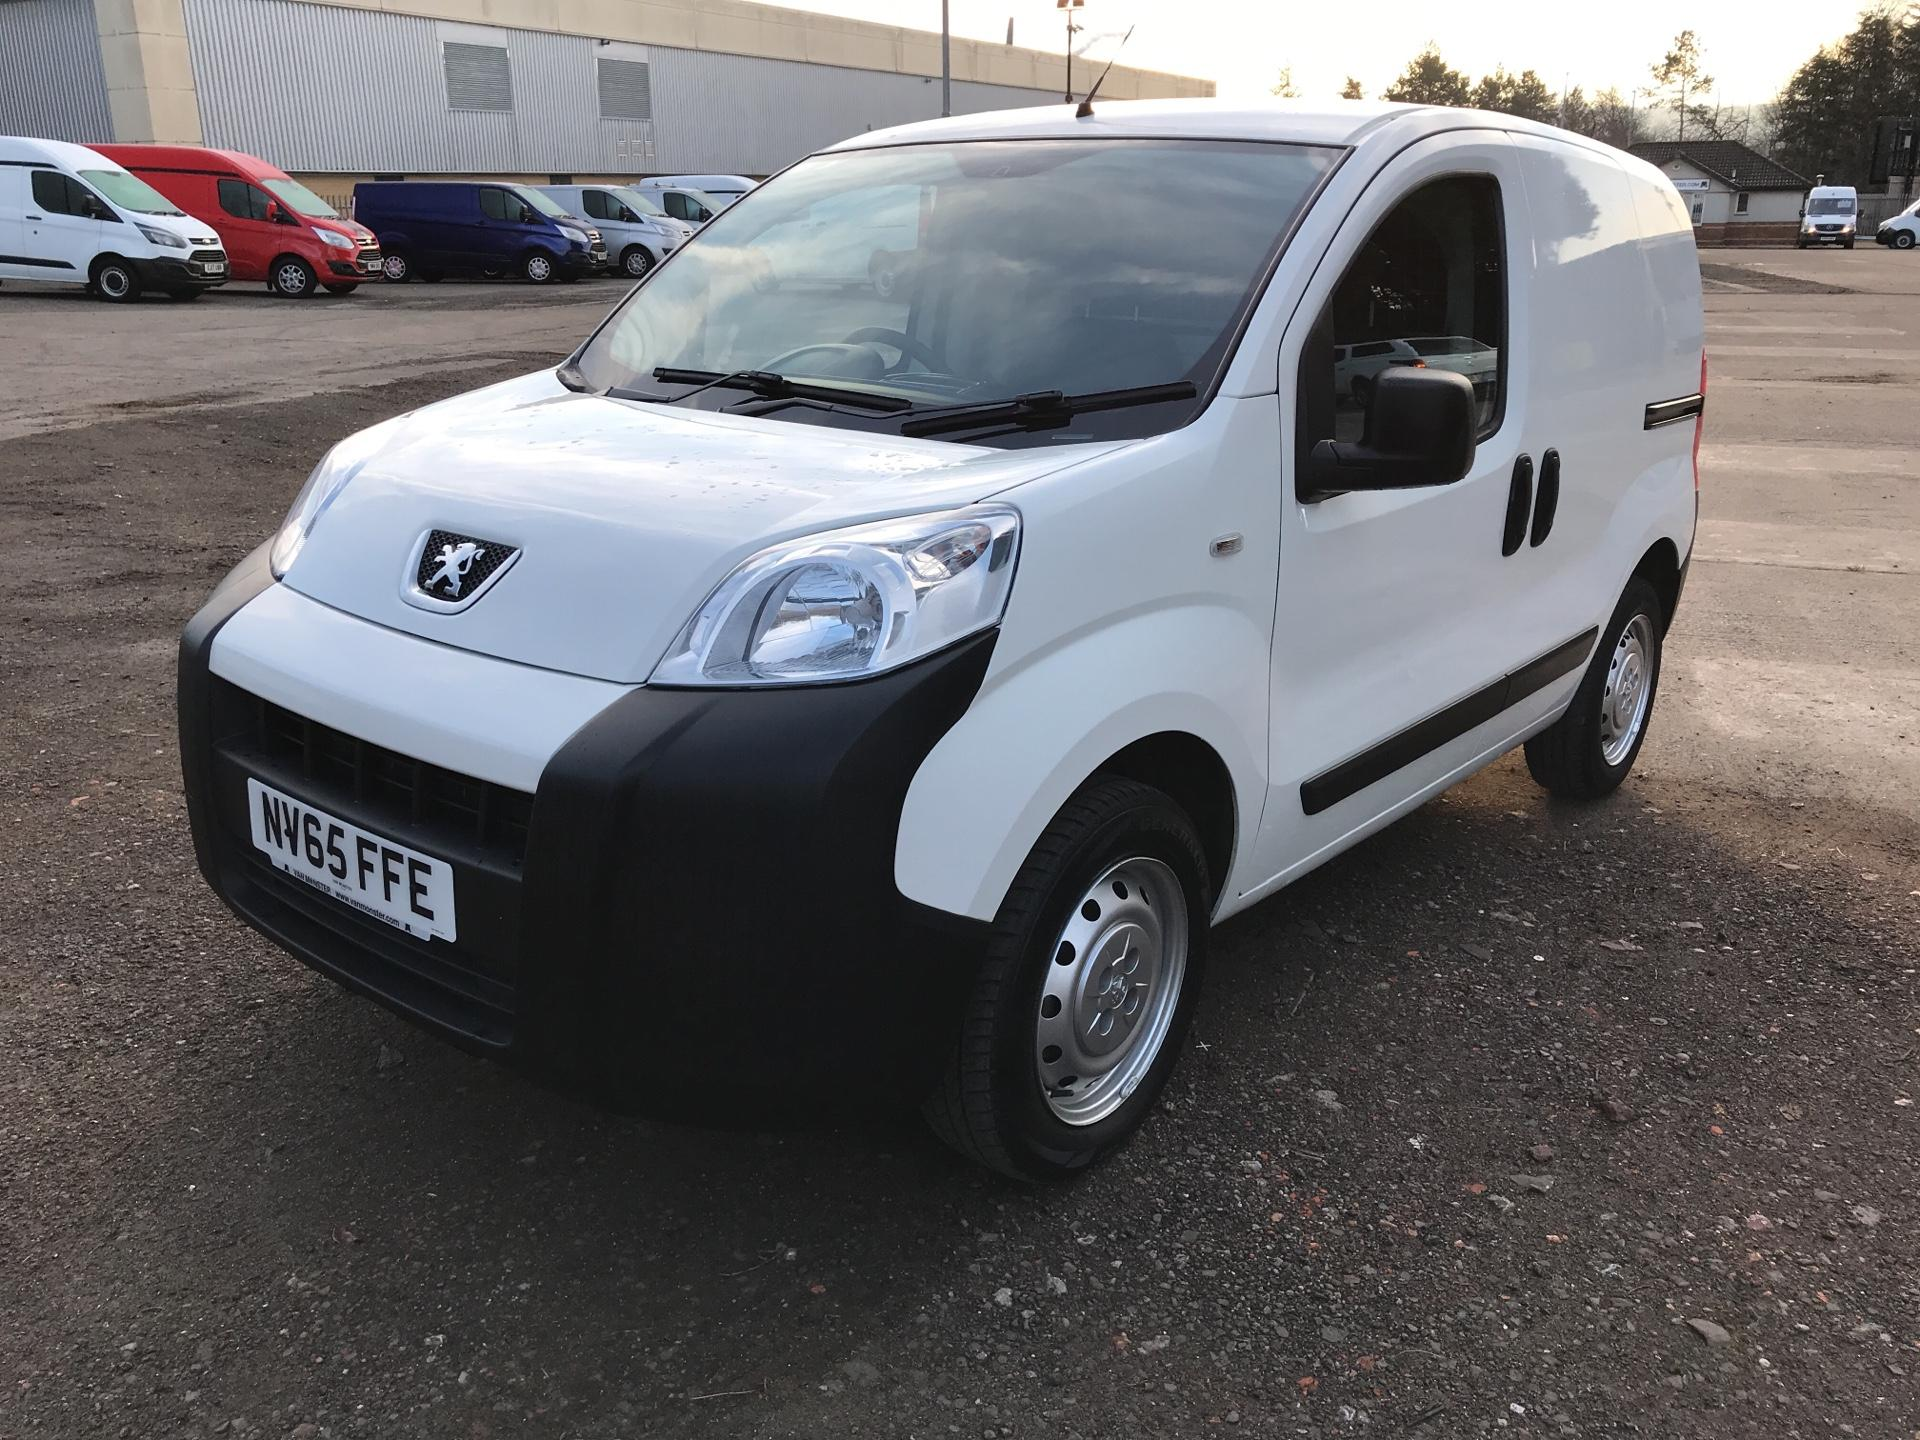 2015 Peugeot Bipper 1.3 HDI 75 S PLUS PACK NON S/S EURO 5 (NV65FFE) Image 7